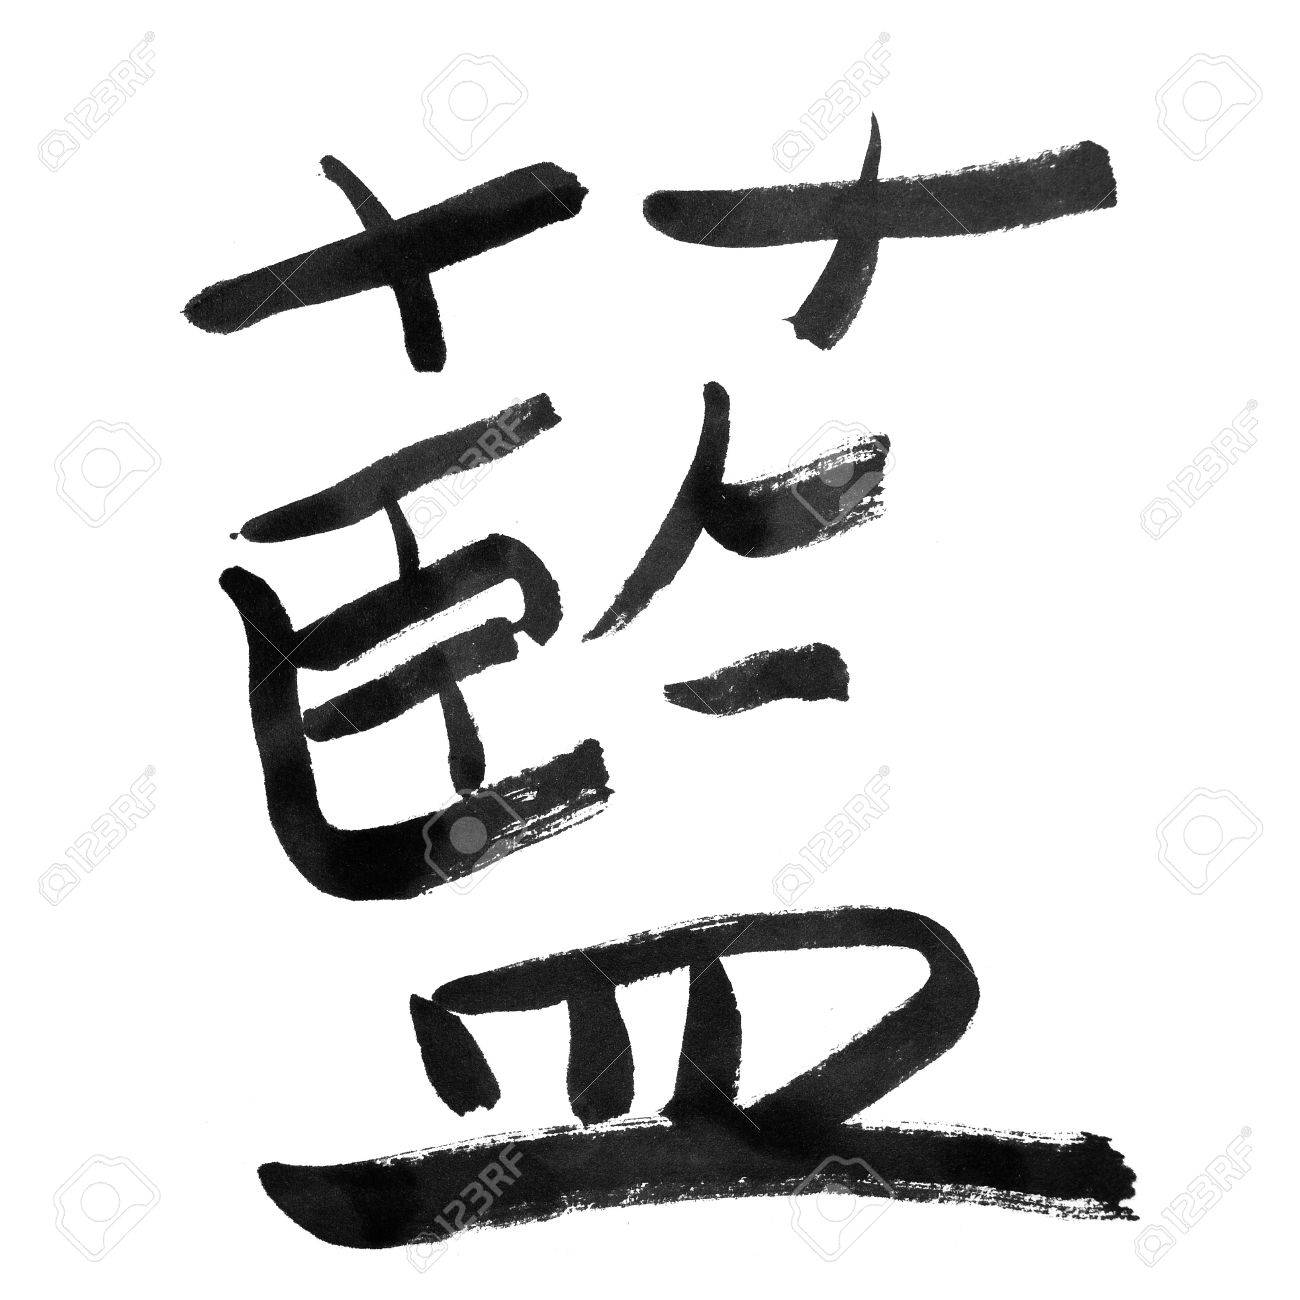 blue, traditional chinese calligraphy art isolated on white background. Stock Photo - 9898635